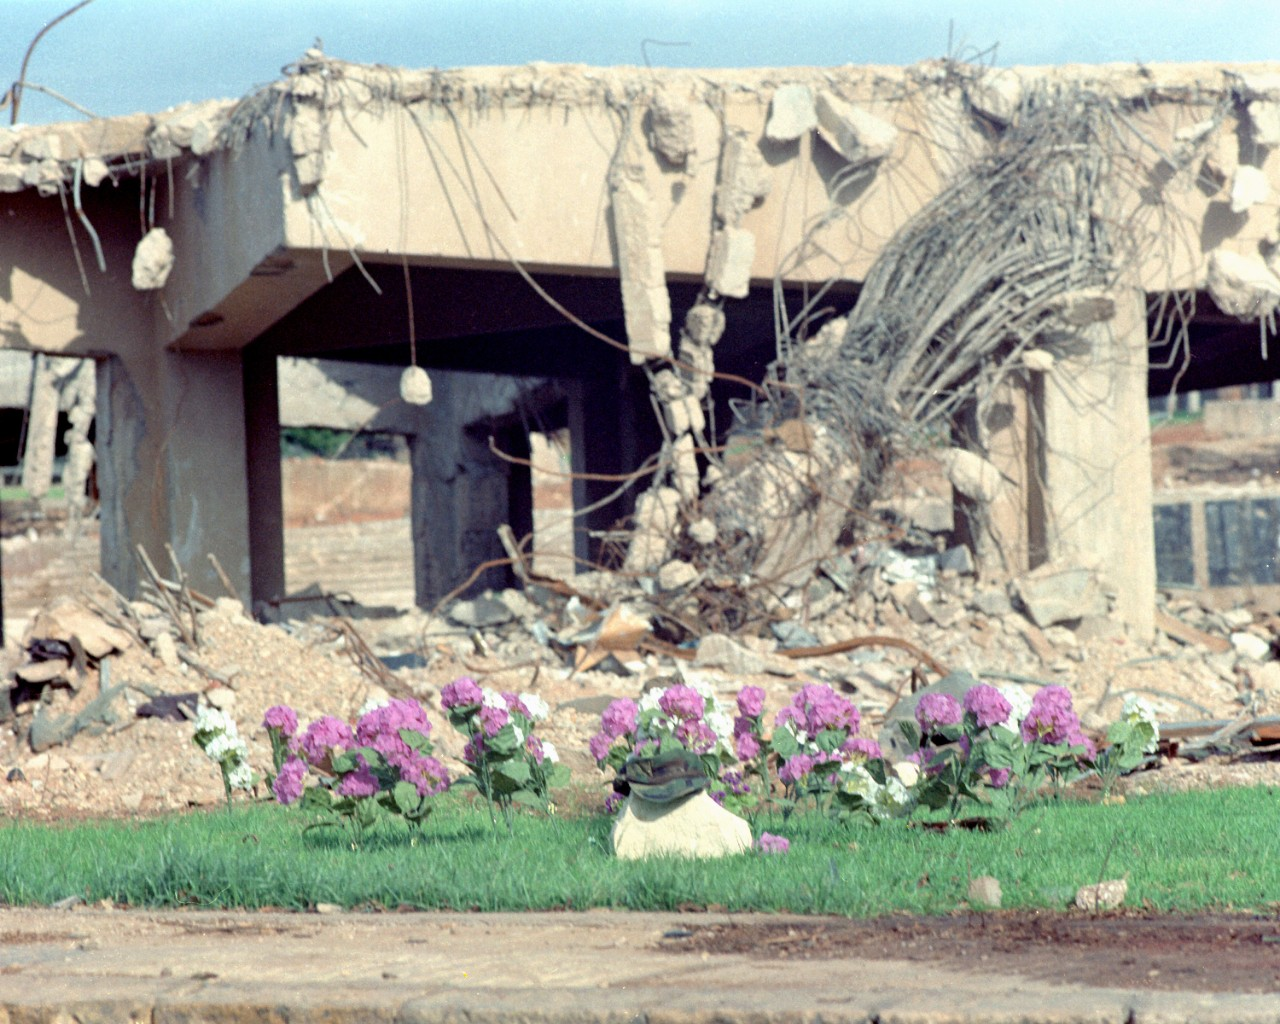 The bombed remains of the U.S. Marine barracks at Beirut International Airport